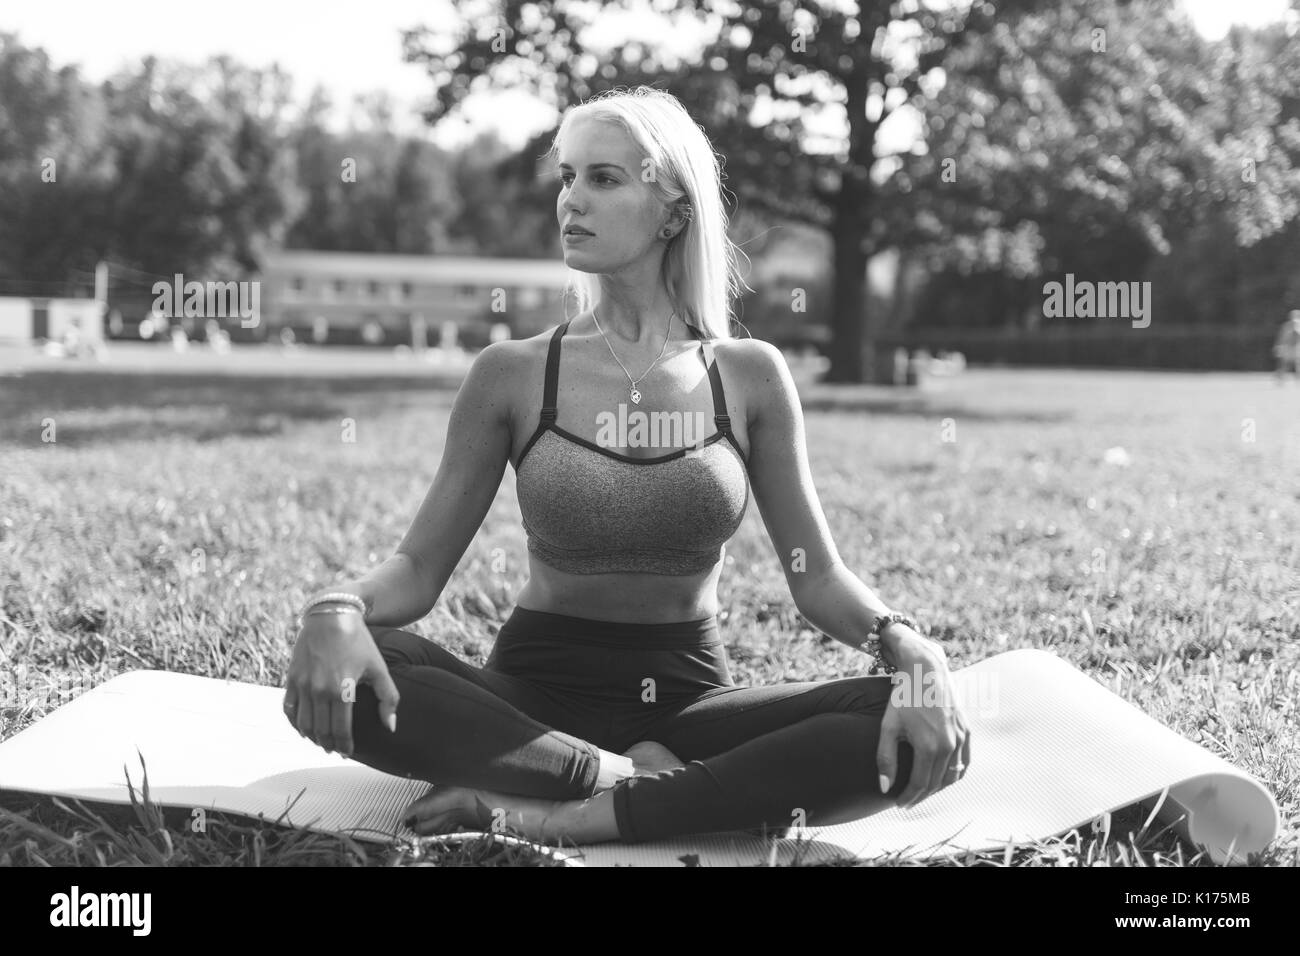 Yoga Pose Black And White Stock Photos Amp Images Alamy